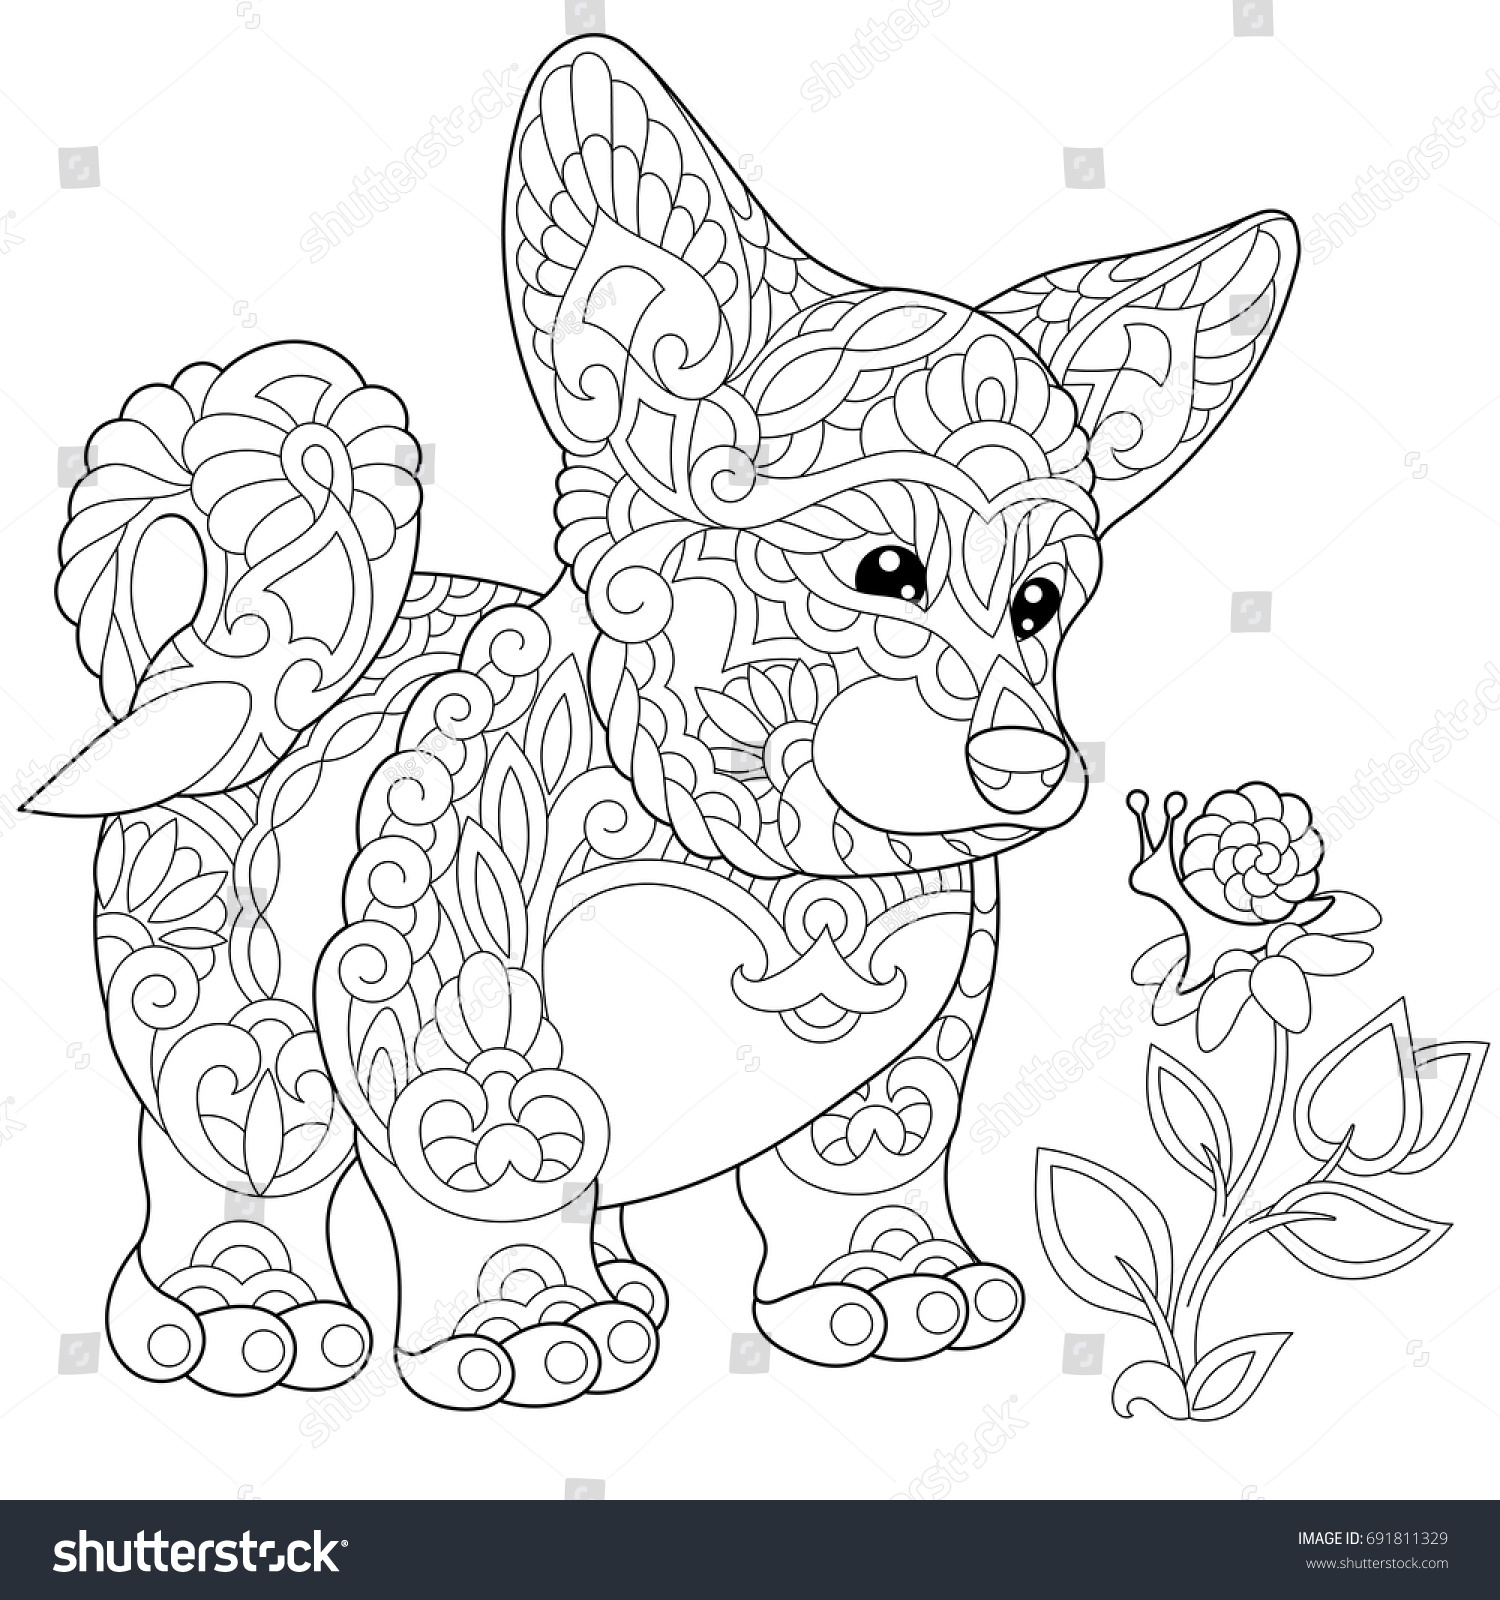 coloring page cardigan welsh corgi puppy stock vector 691811329